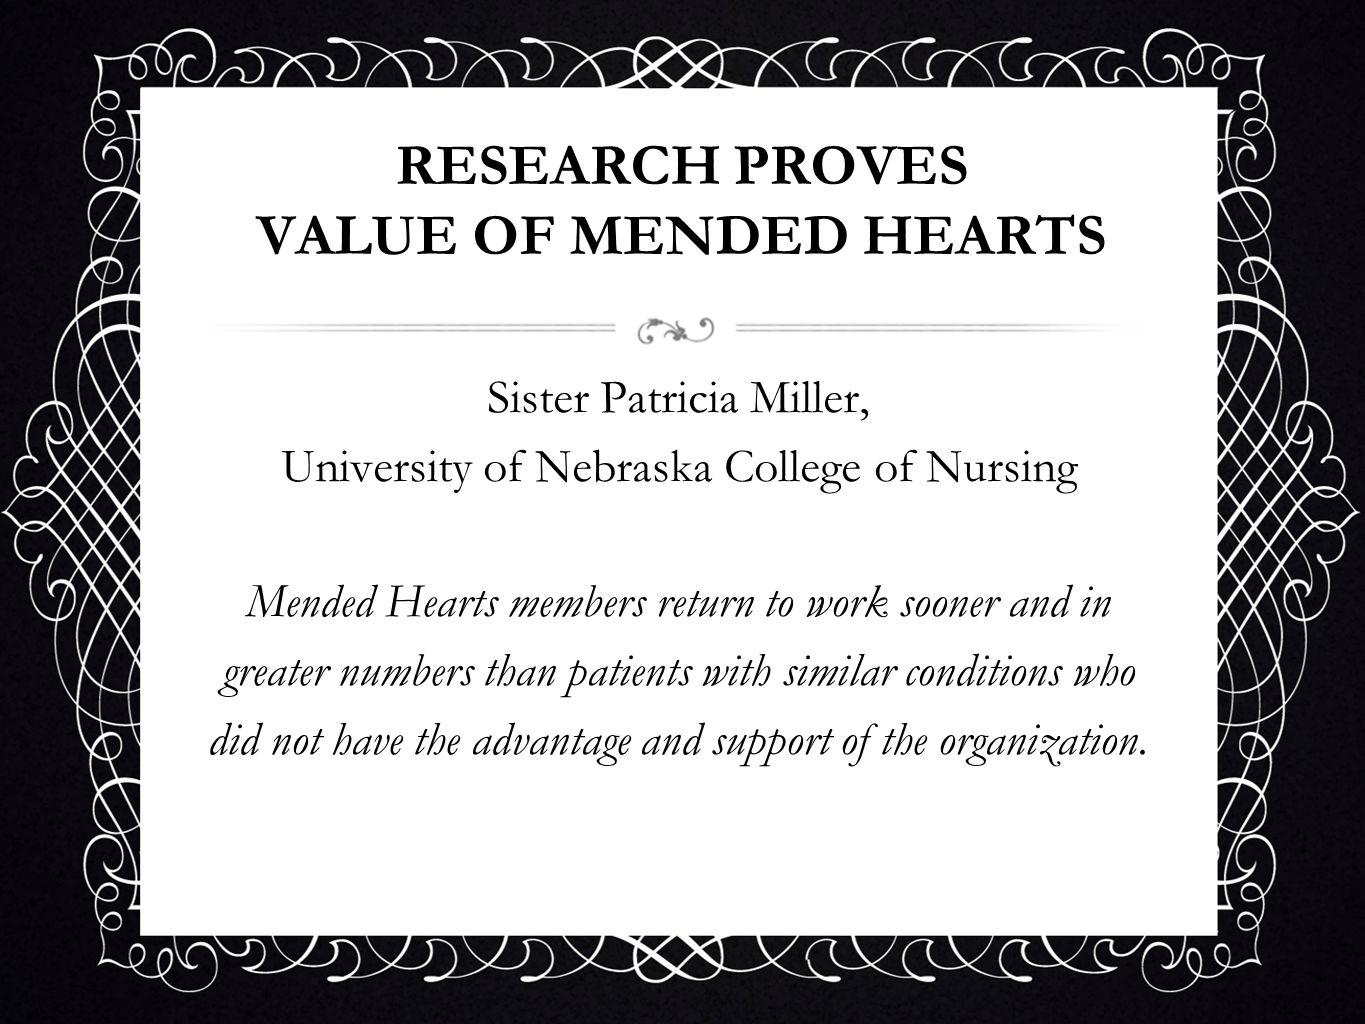 RESEARCH PROVES VALUE OF MENDED HEARTS